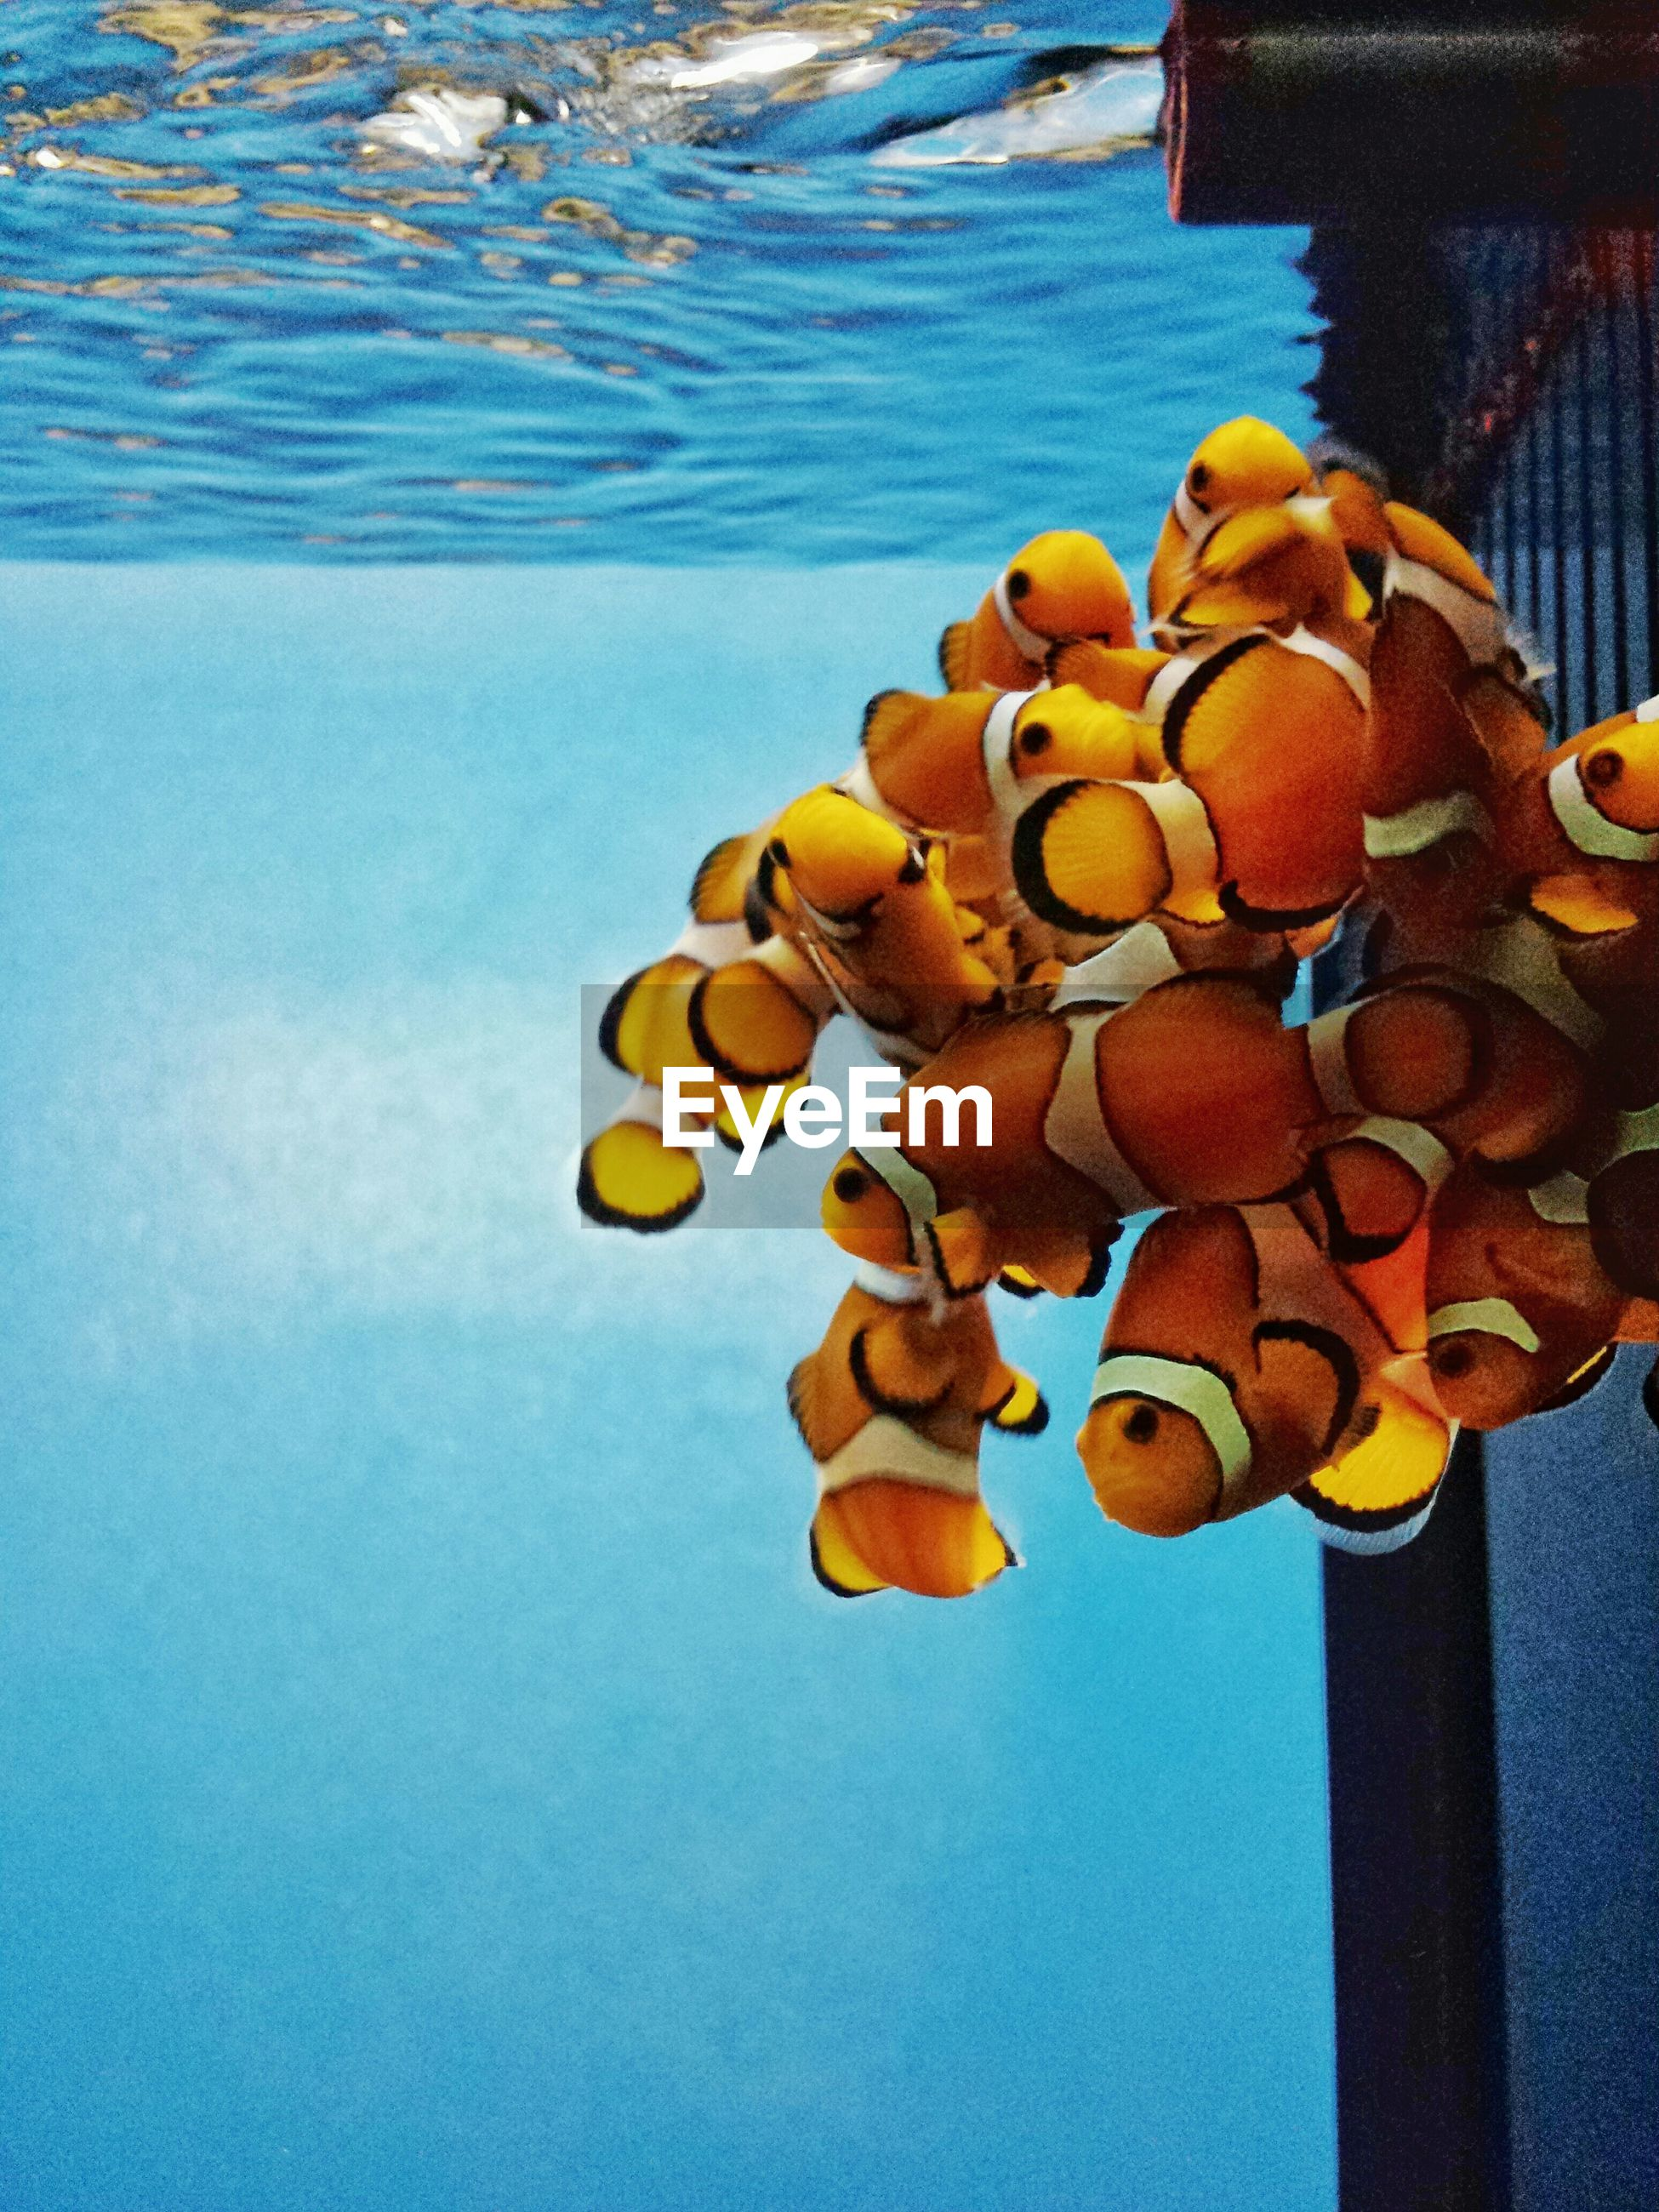 water, large group of objects, wood - material, no people, multi colored, blue, high angle view, sea, outdoors, sunlight, day, abundance, nature, stack, still life, tranquility, orange color, close-up, protection, reflection